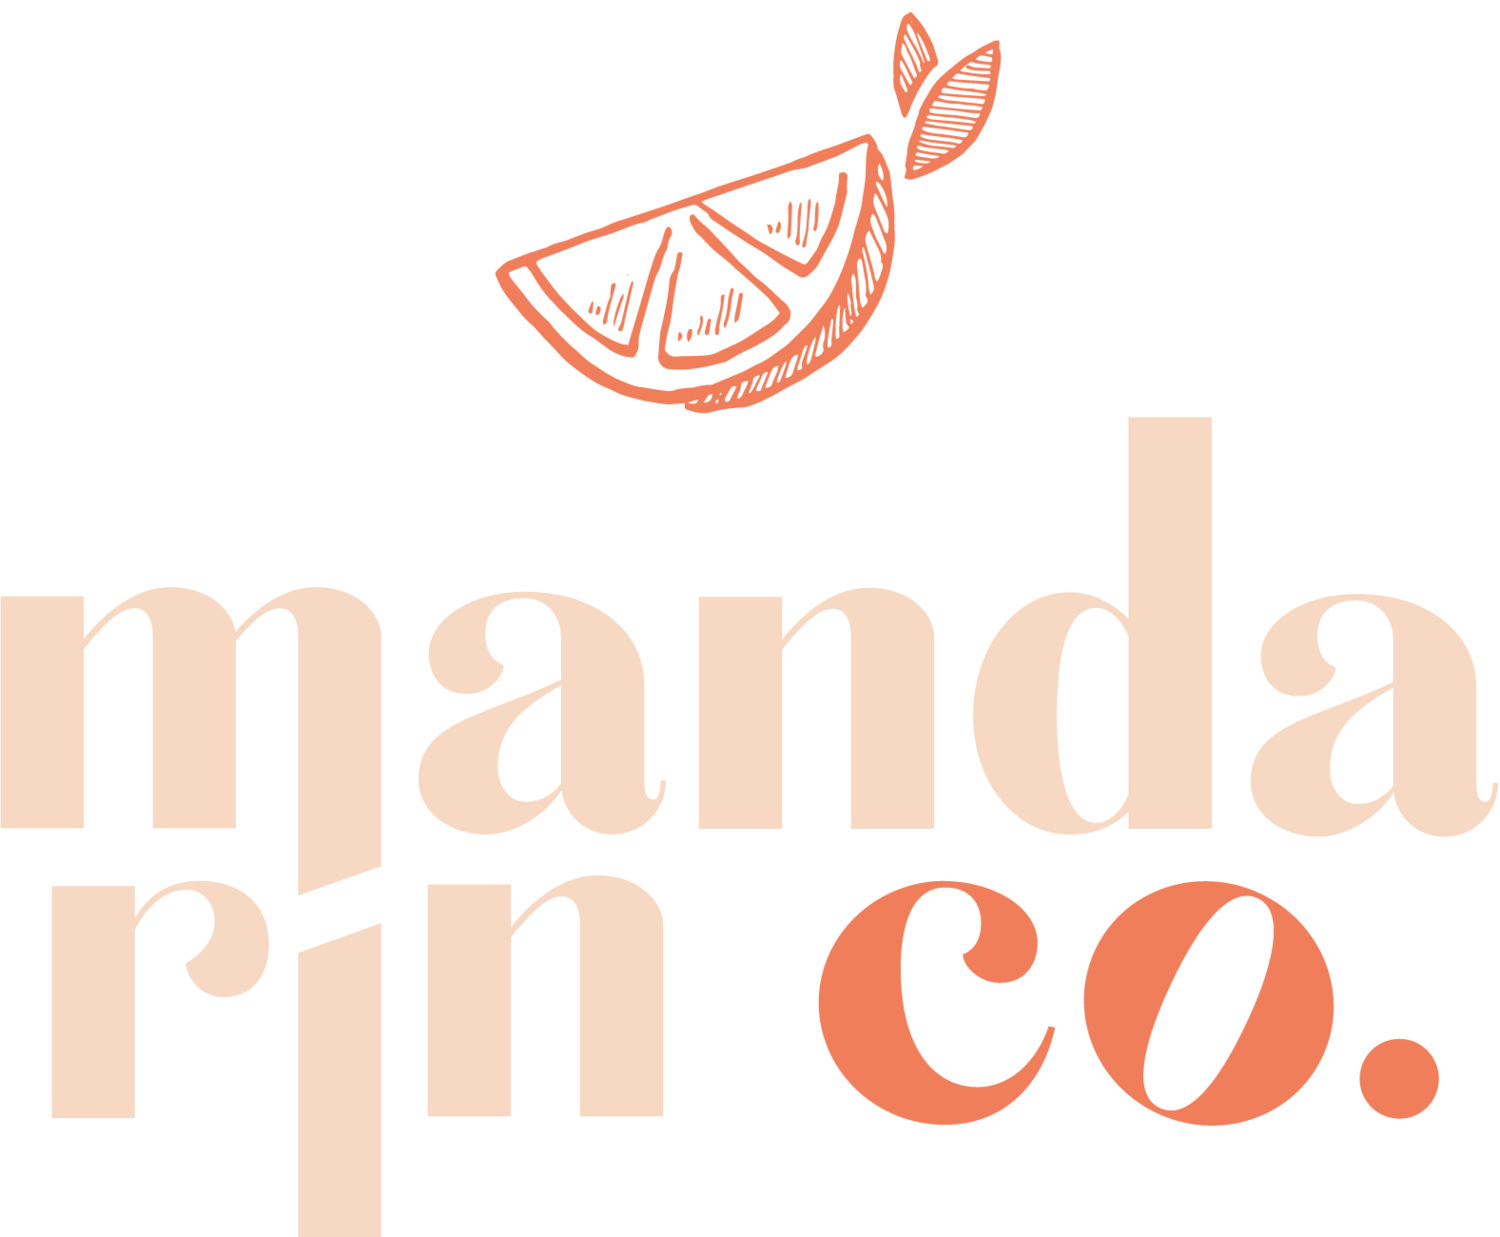 Manda Rin Co.